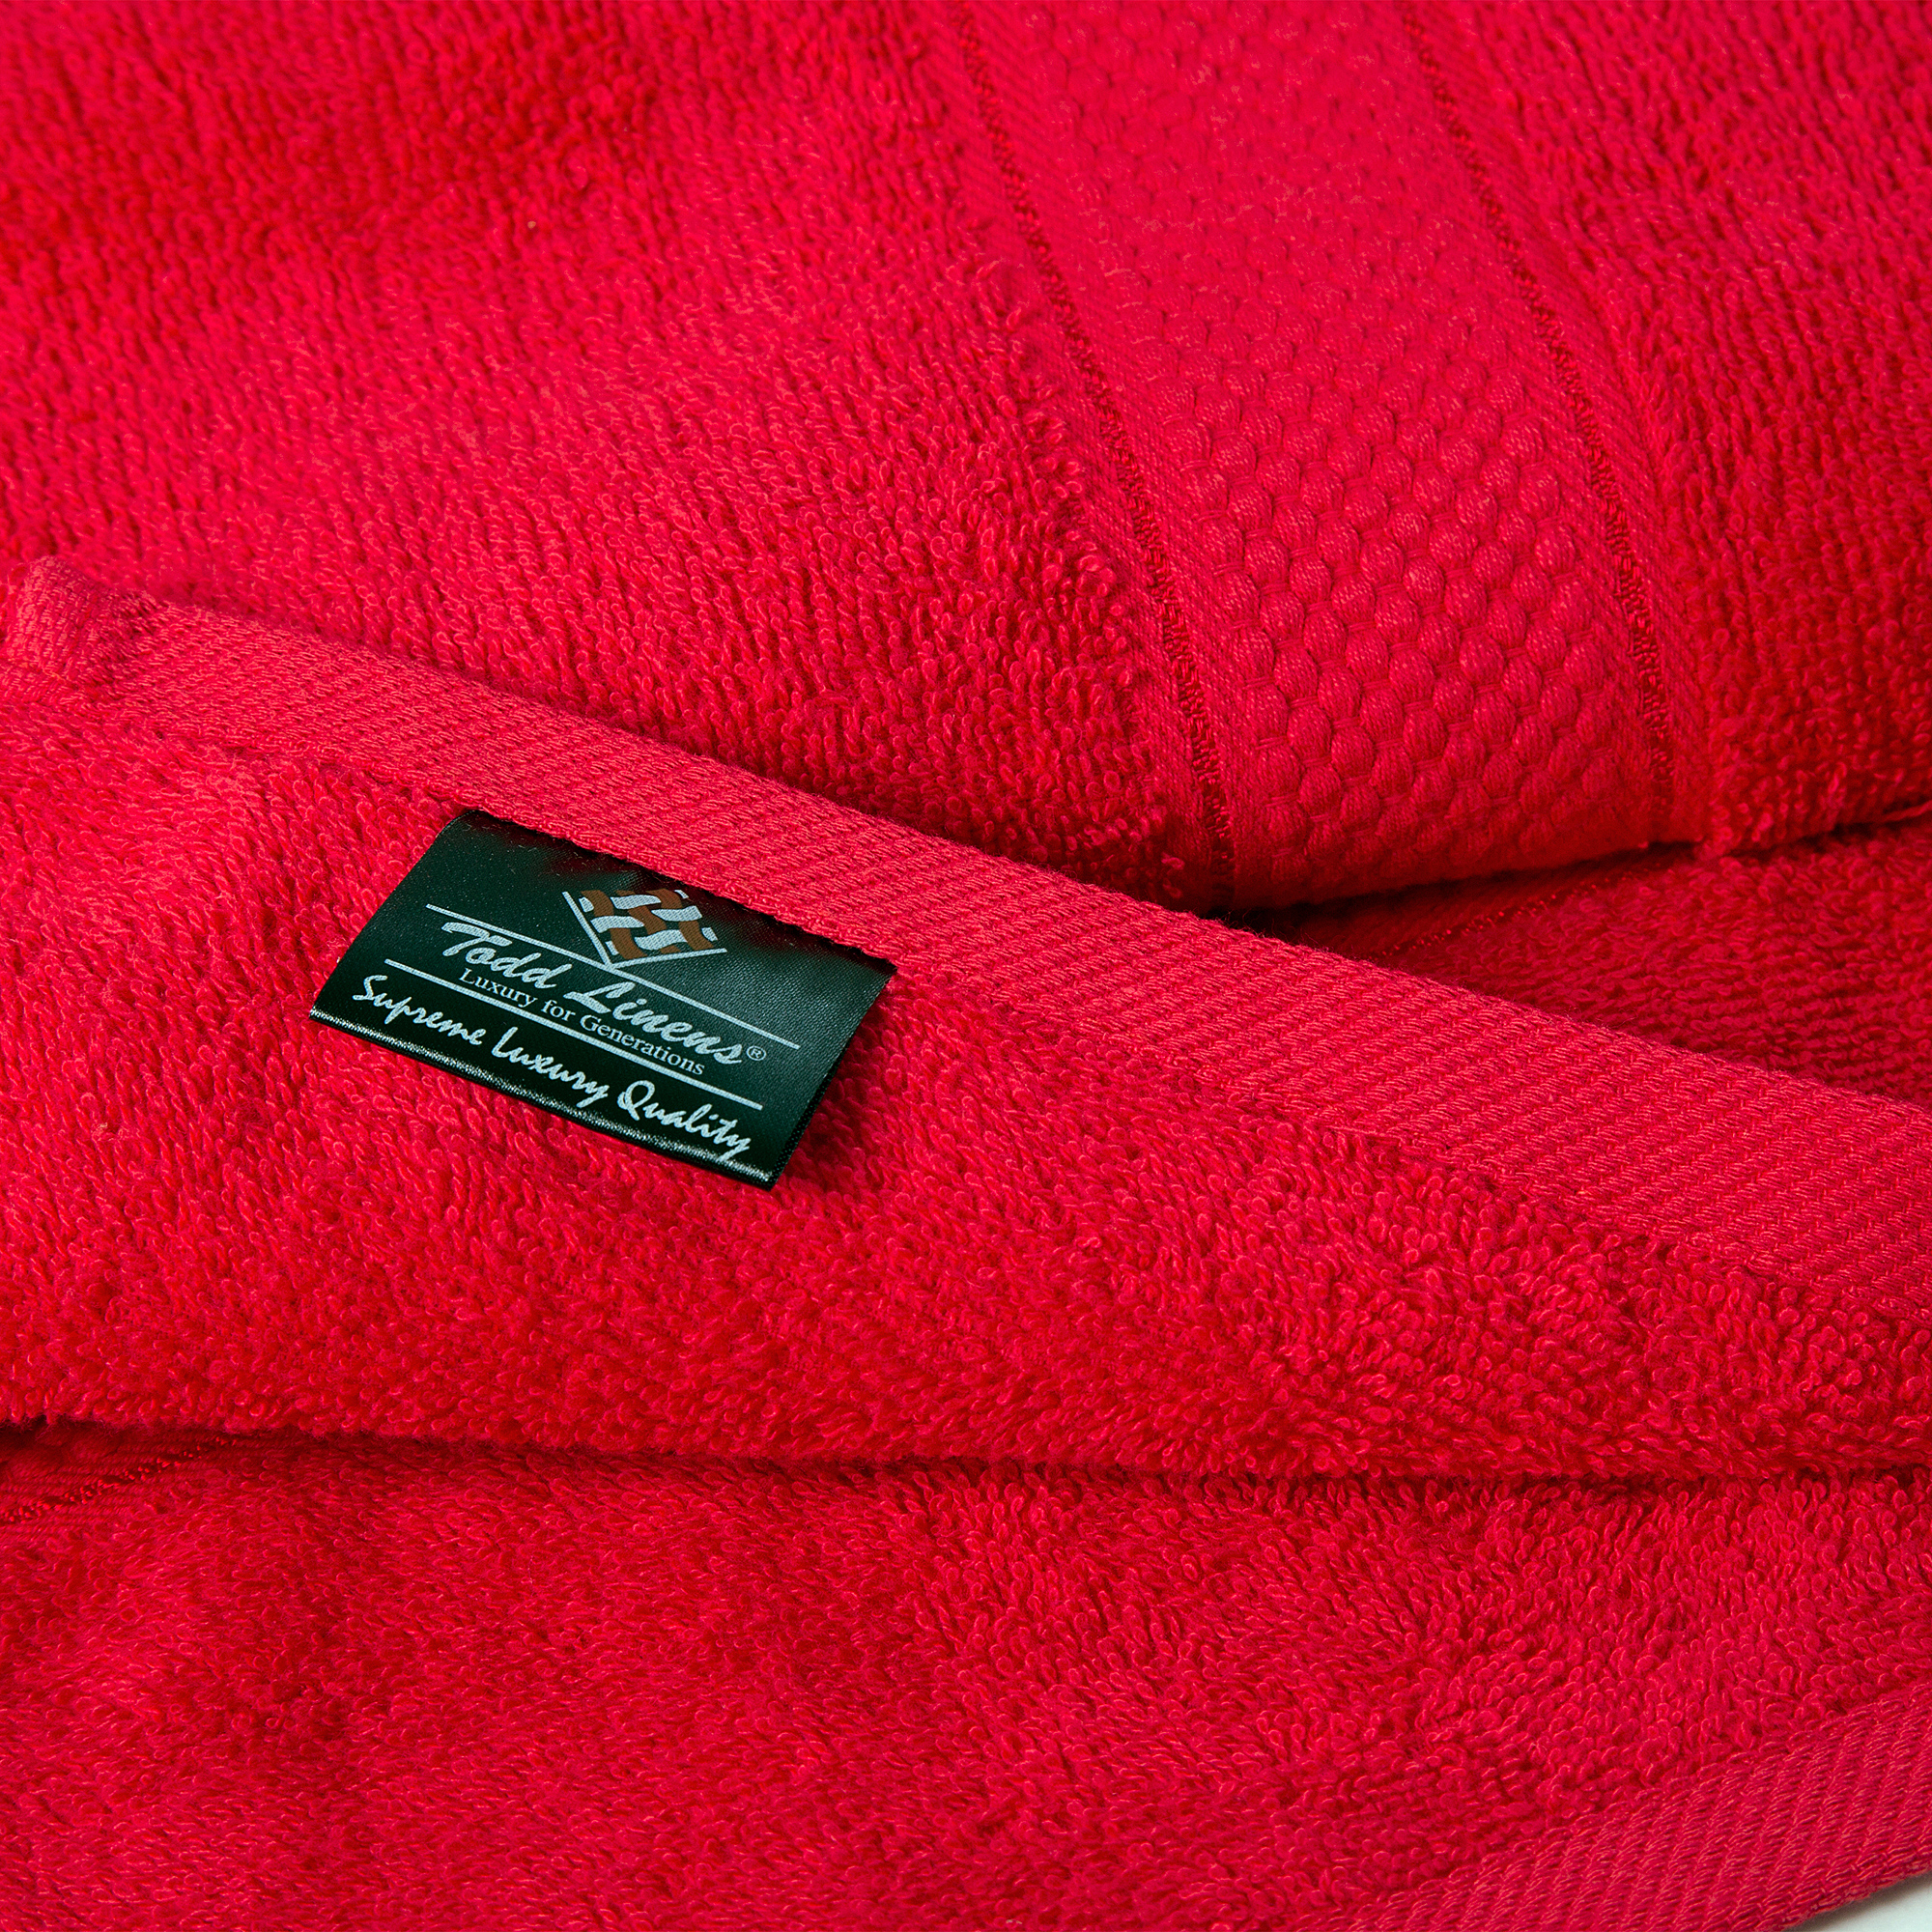 2 Pcs 100 % Cotton Premium Bath Sheet Towel Bale Set Red Plain